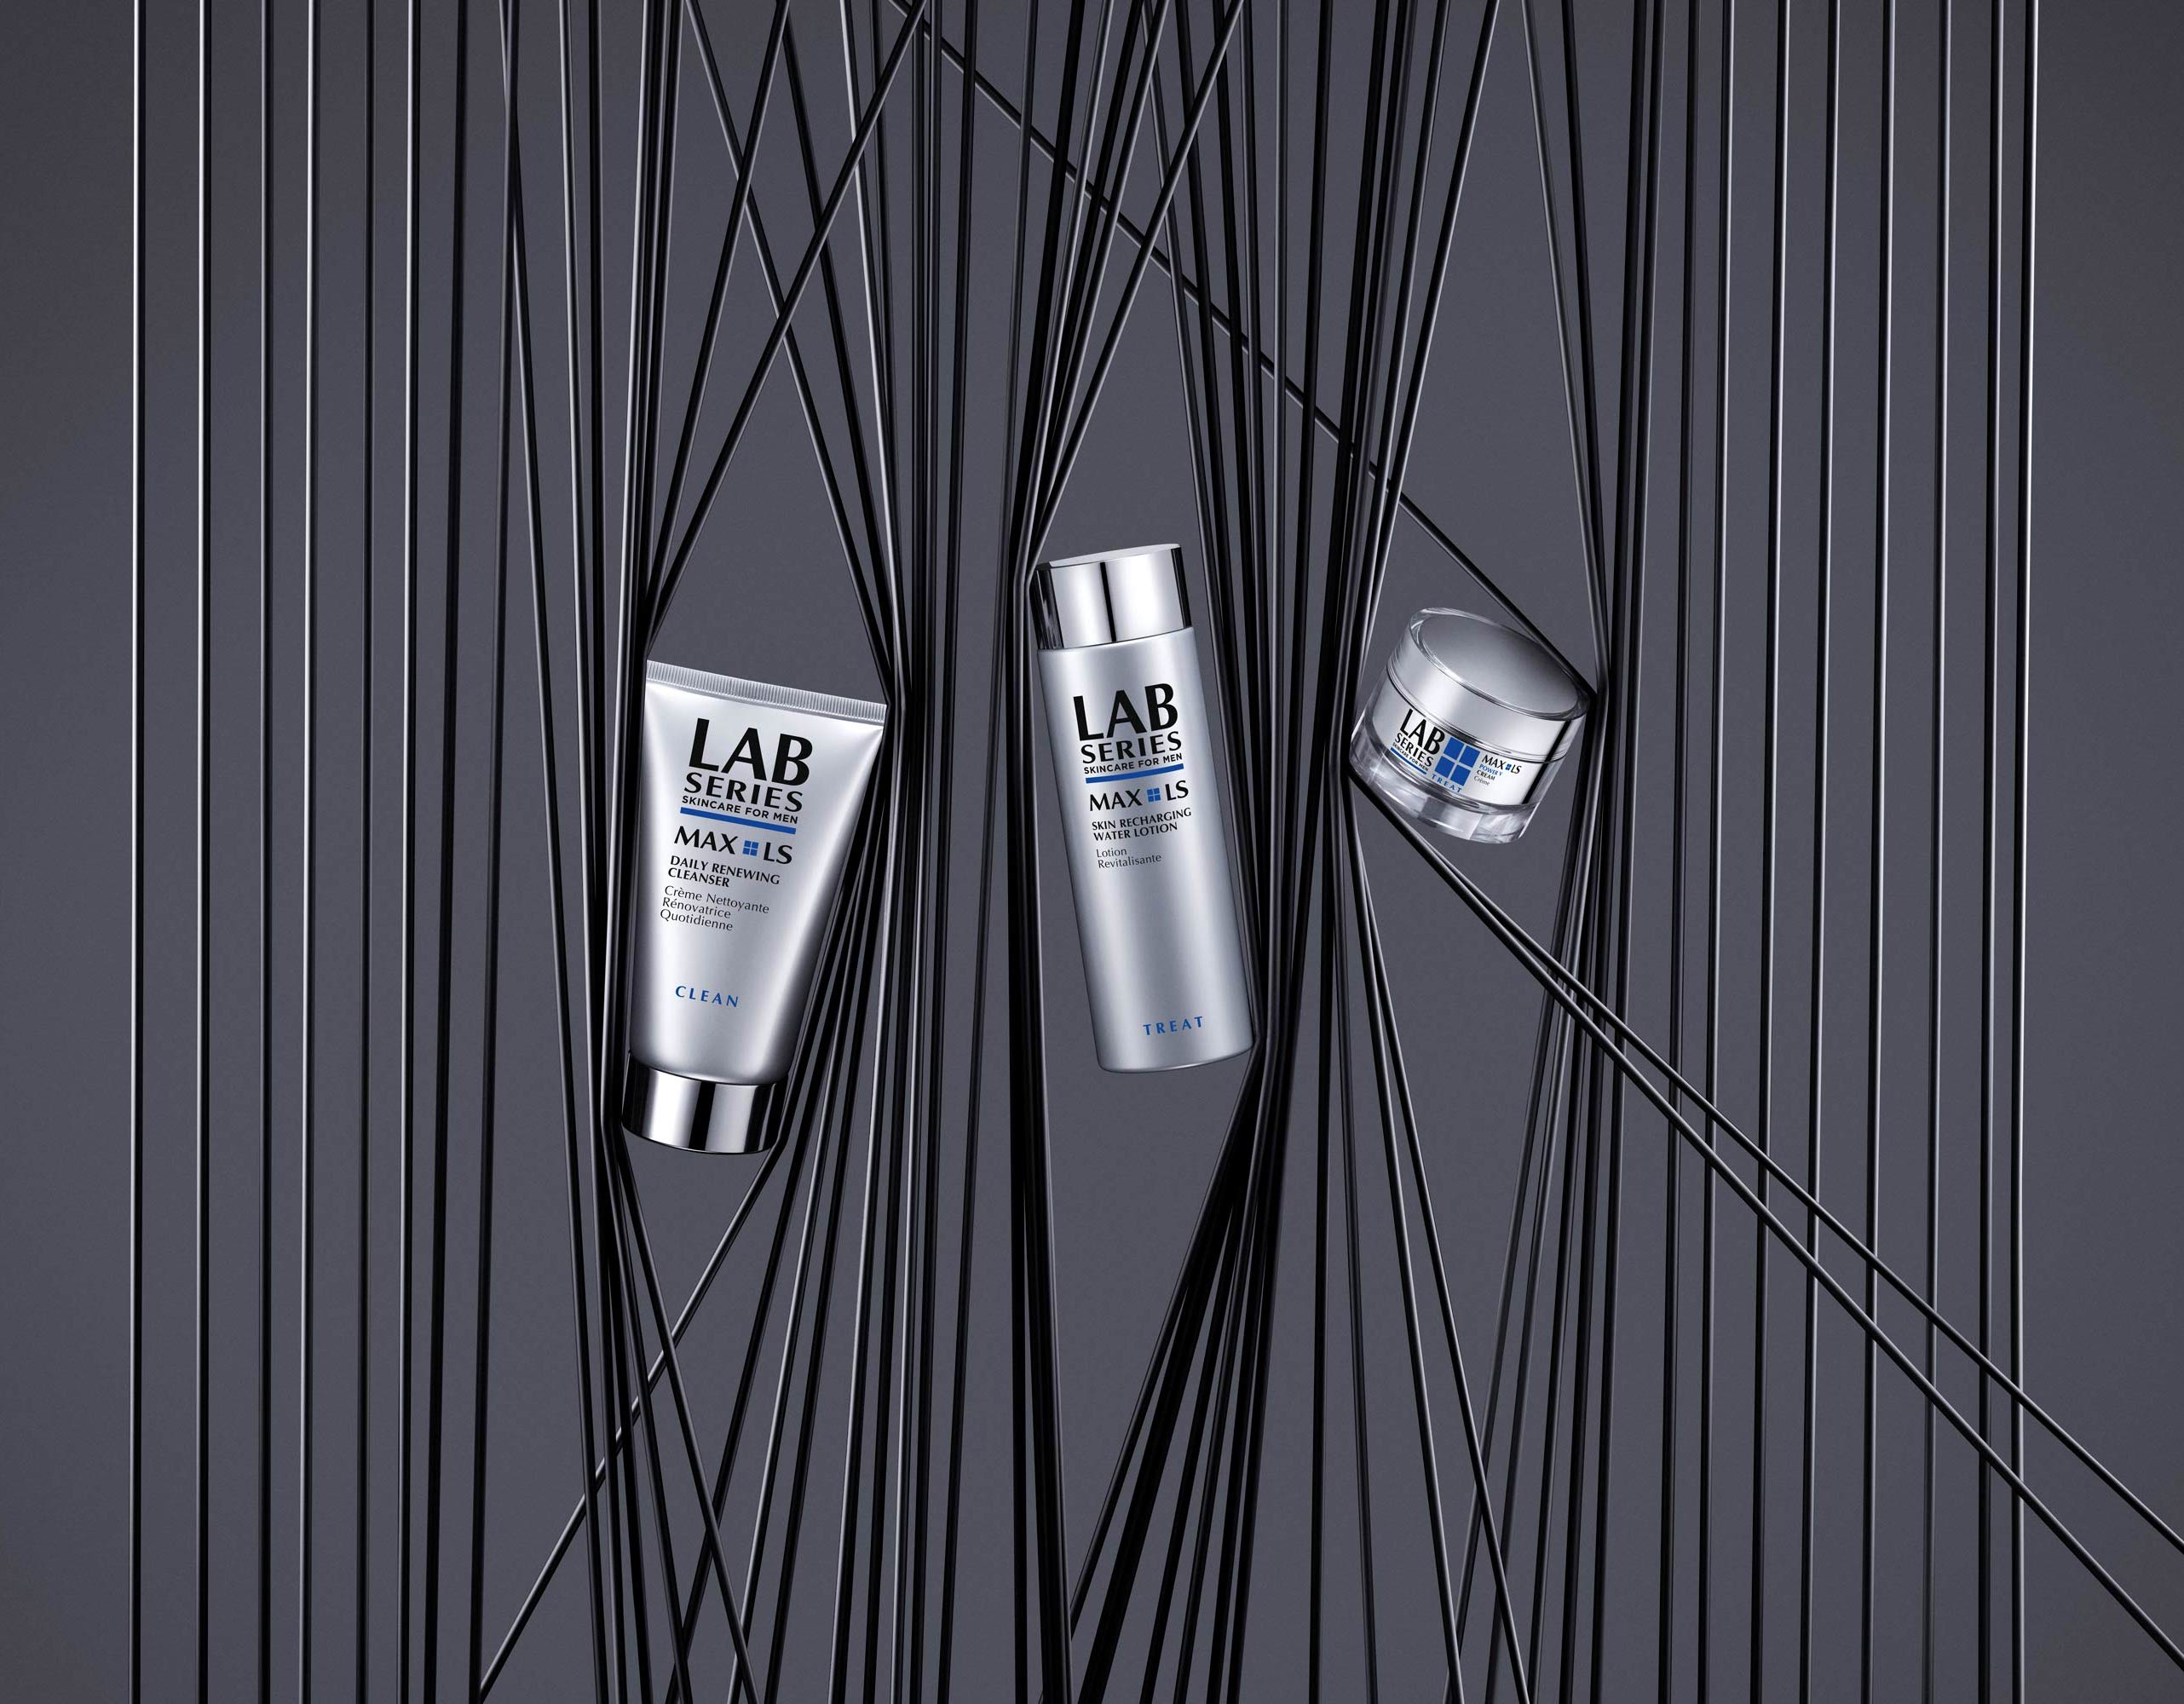 Grooming in March 2020: Lab Series Max LS Collection